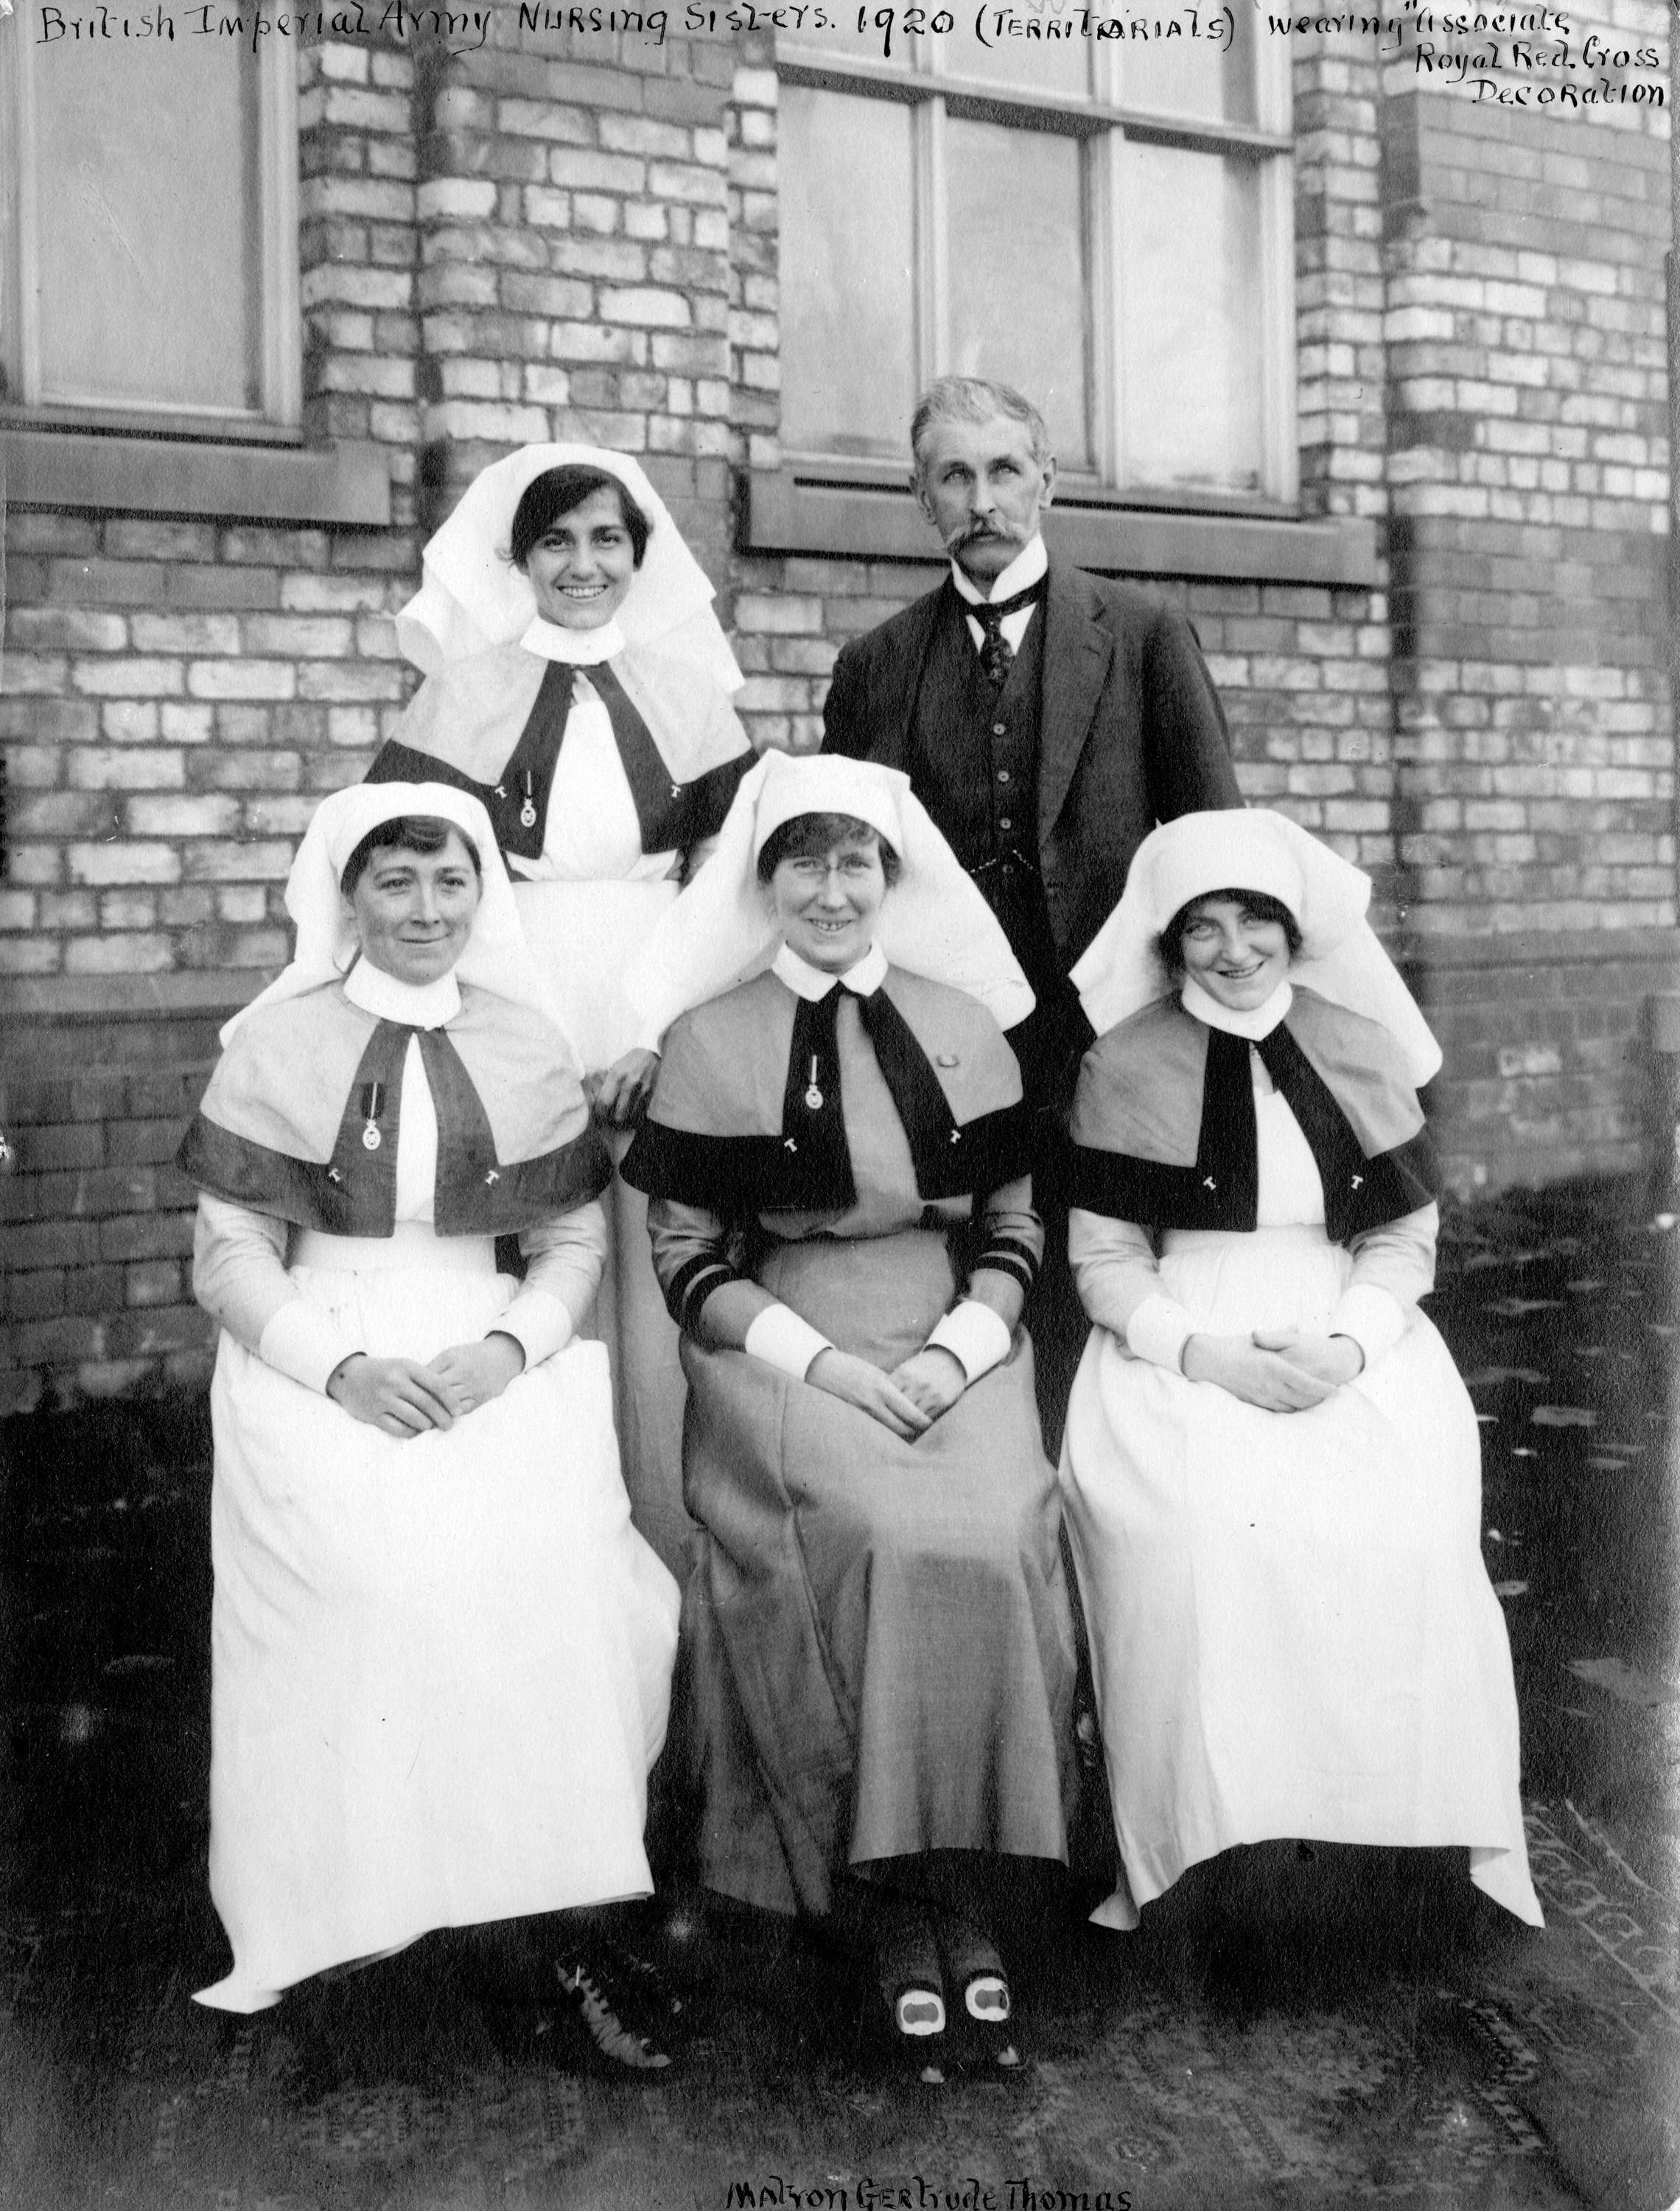 British Army Nursing Sisters And A Doctor Who Served